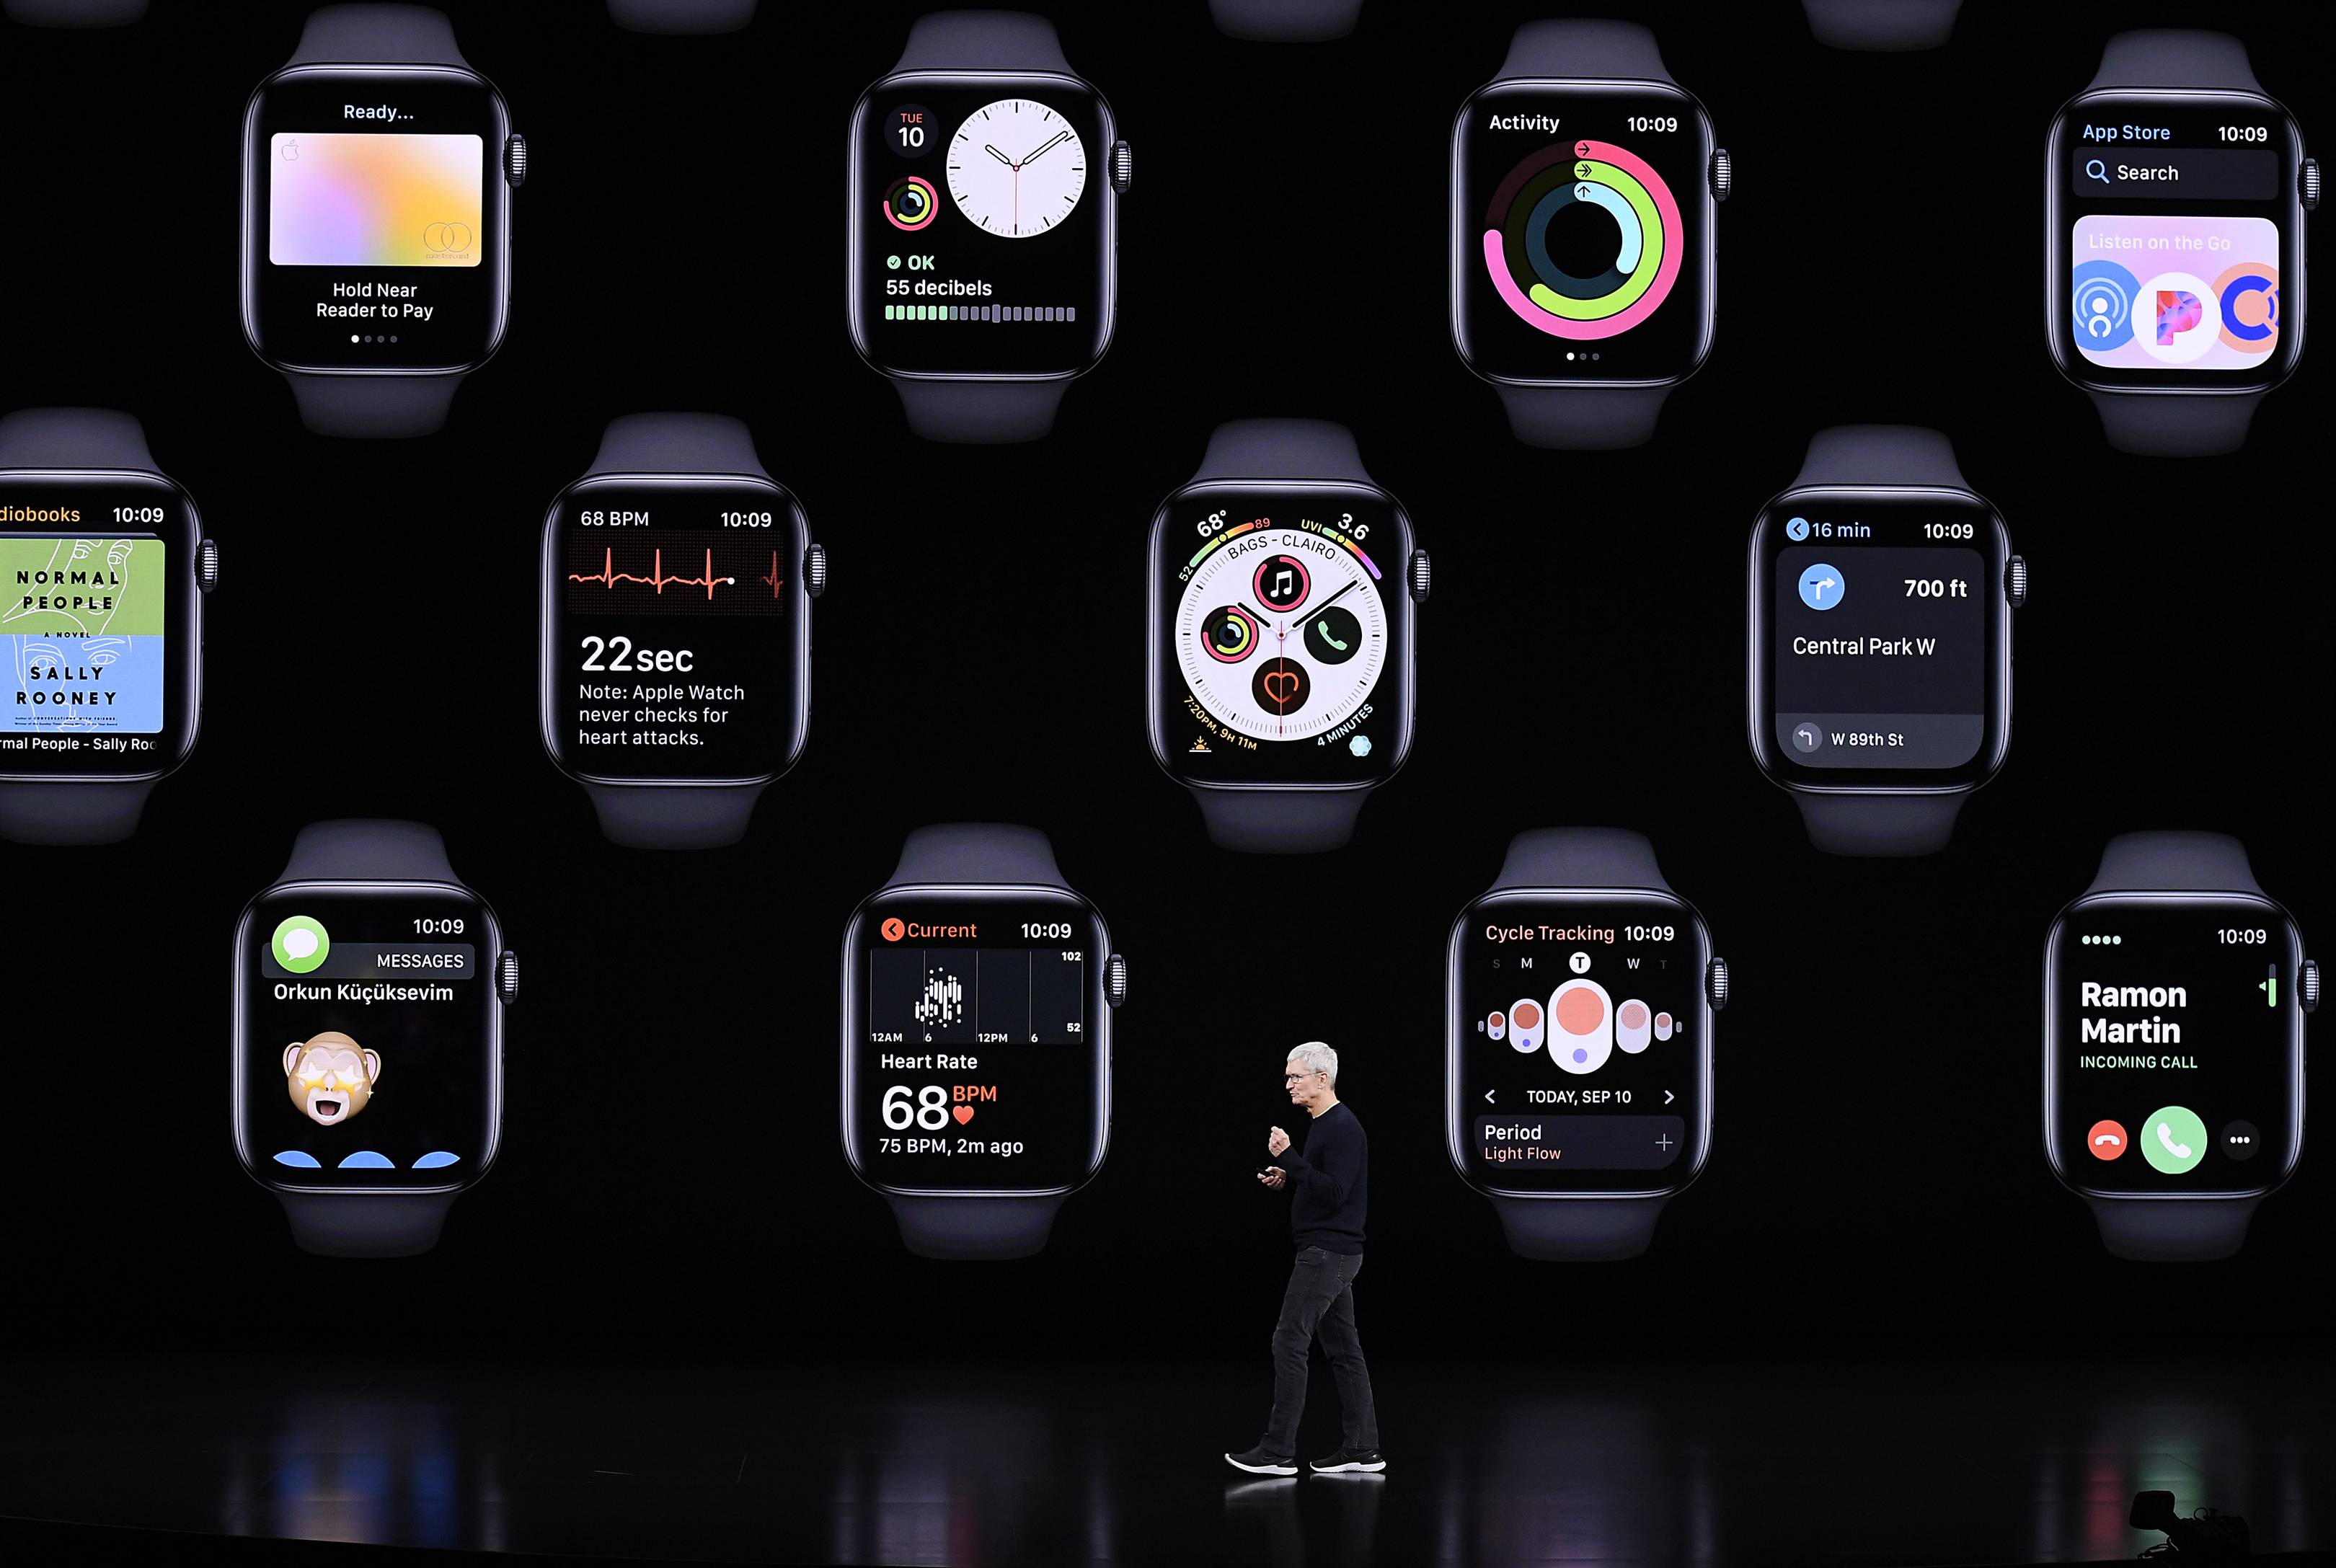 11 interesting things we learned from Apple's iPhone launch event